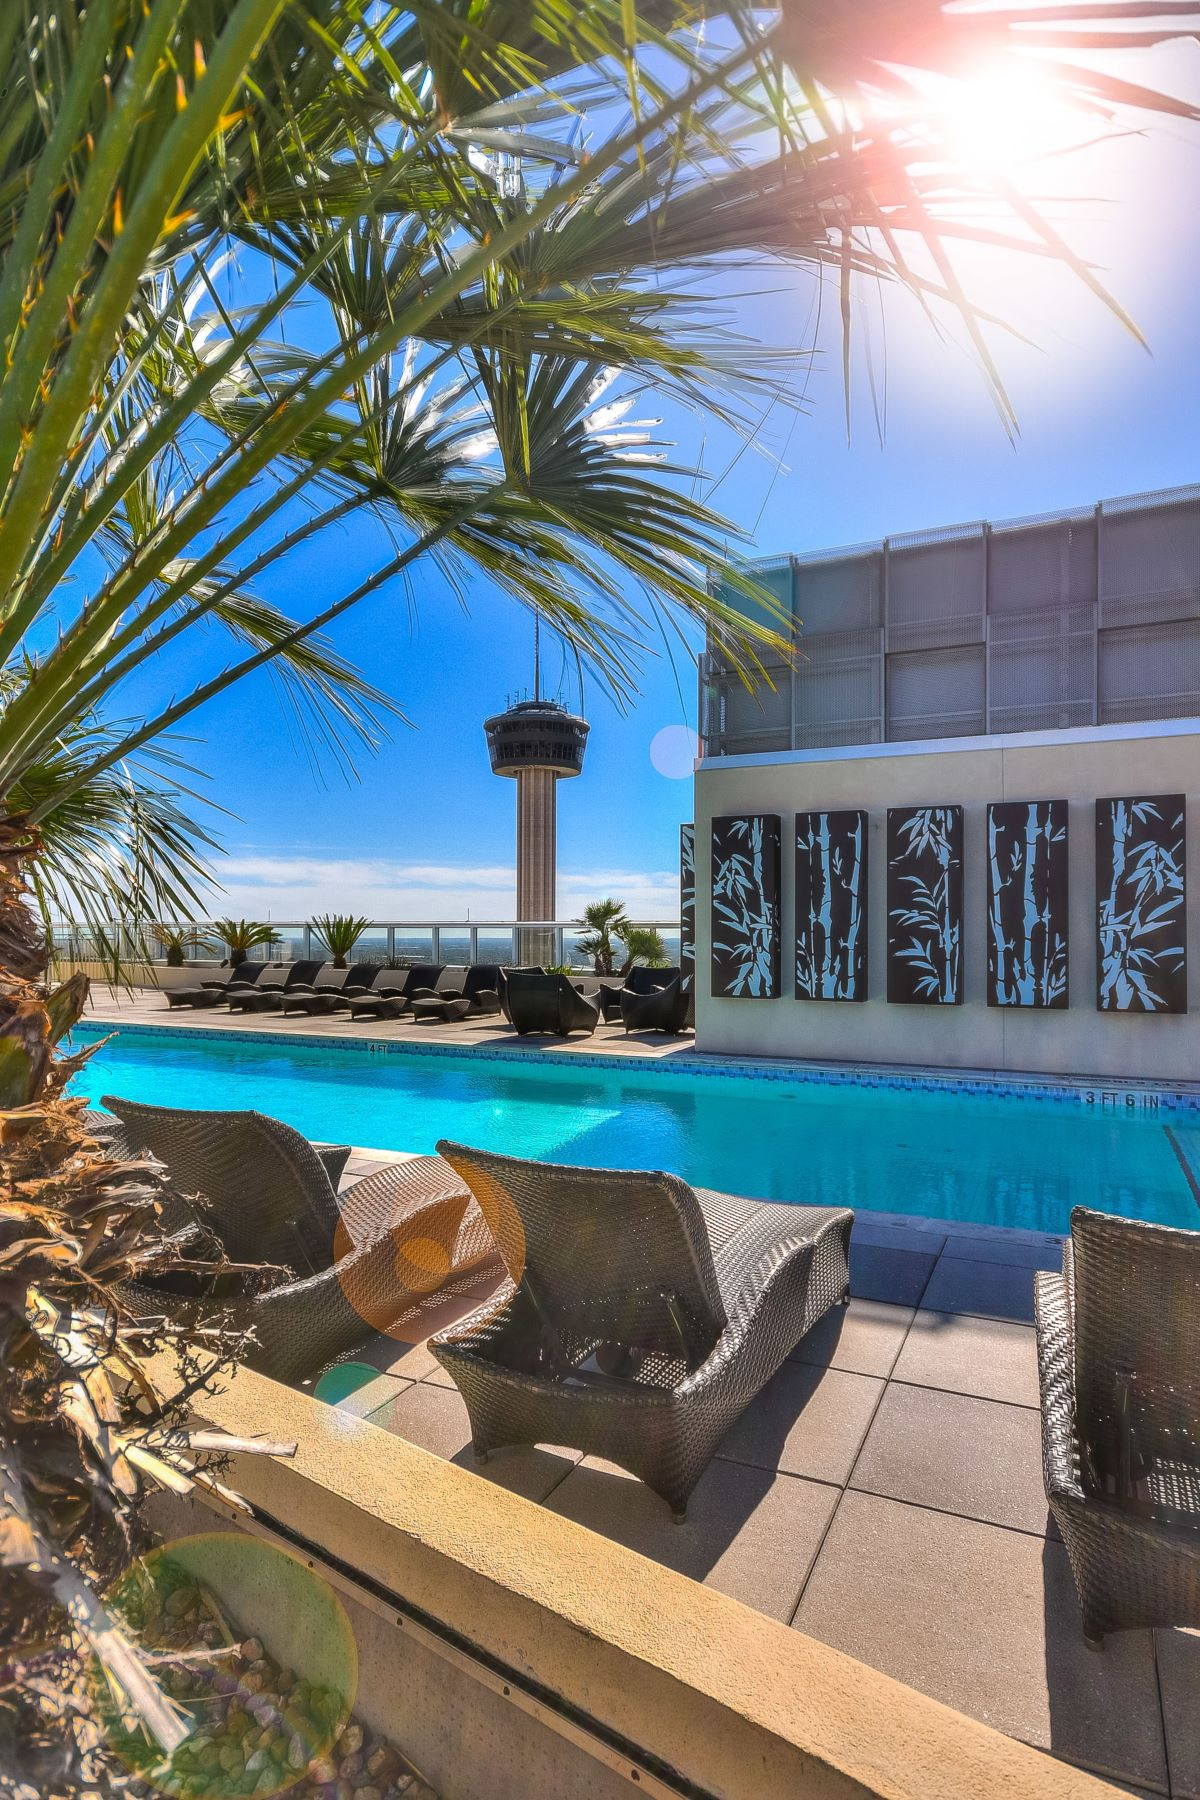 Additional photo for property listing at Luxury Two Bedroom Condominium 600 East Market Street #3119 San Antonio, Texas 78205 United States